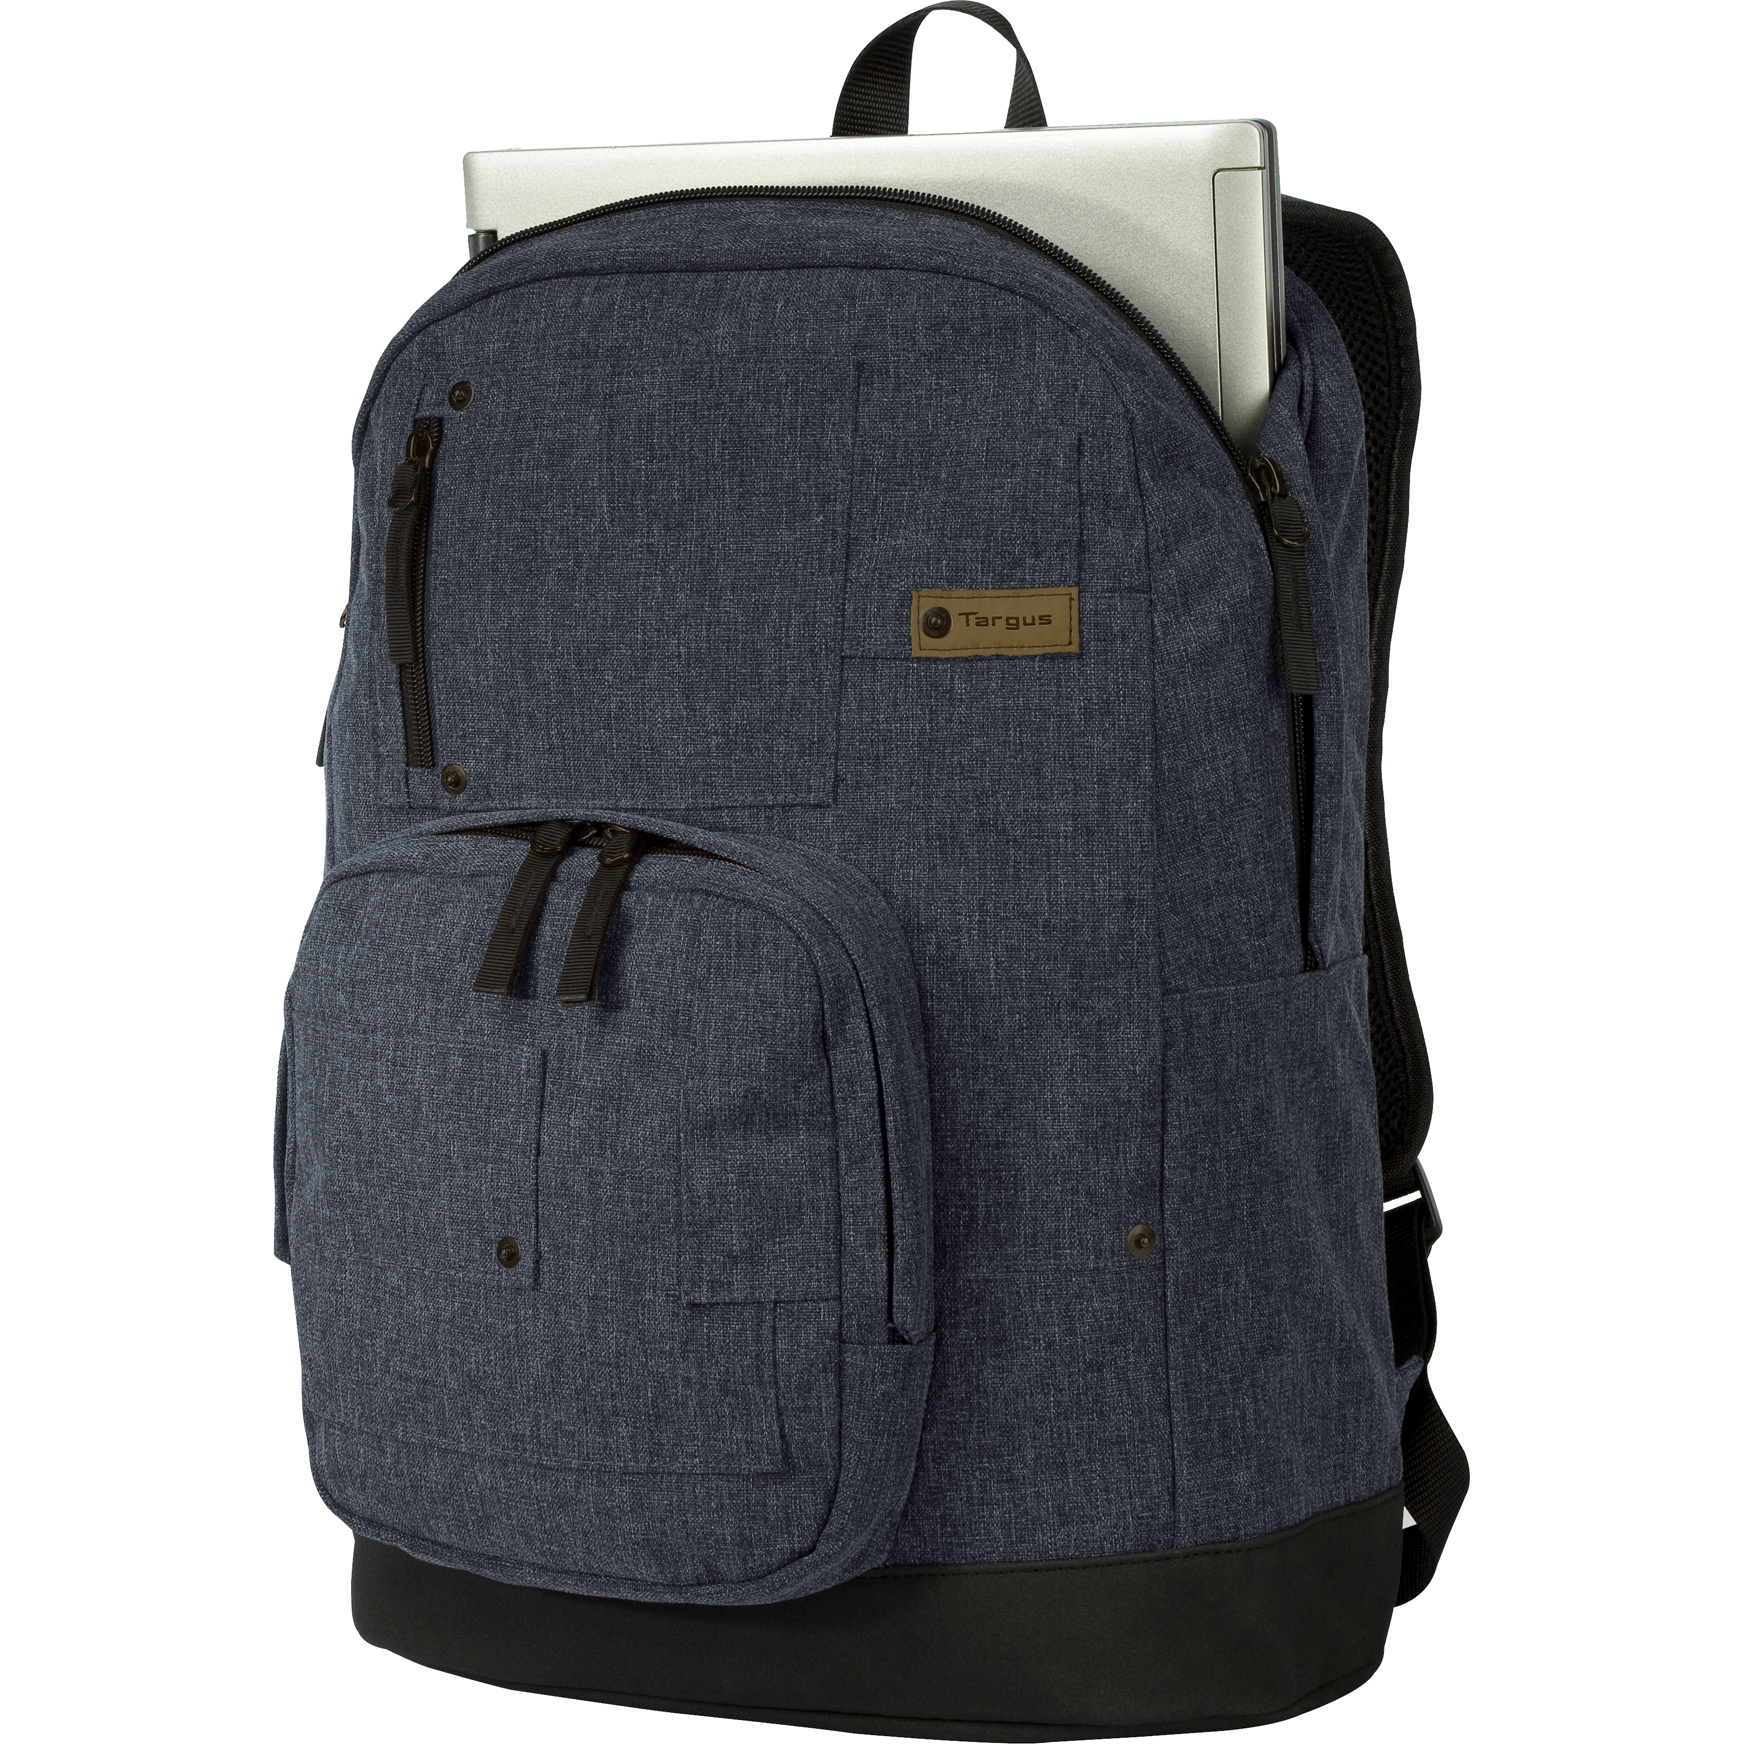 16 Denim Laptop Backpack Thz195us Blue Backpacks Targus